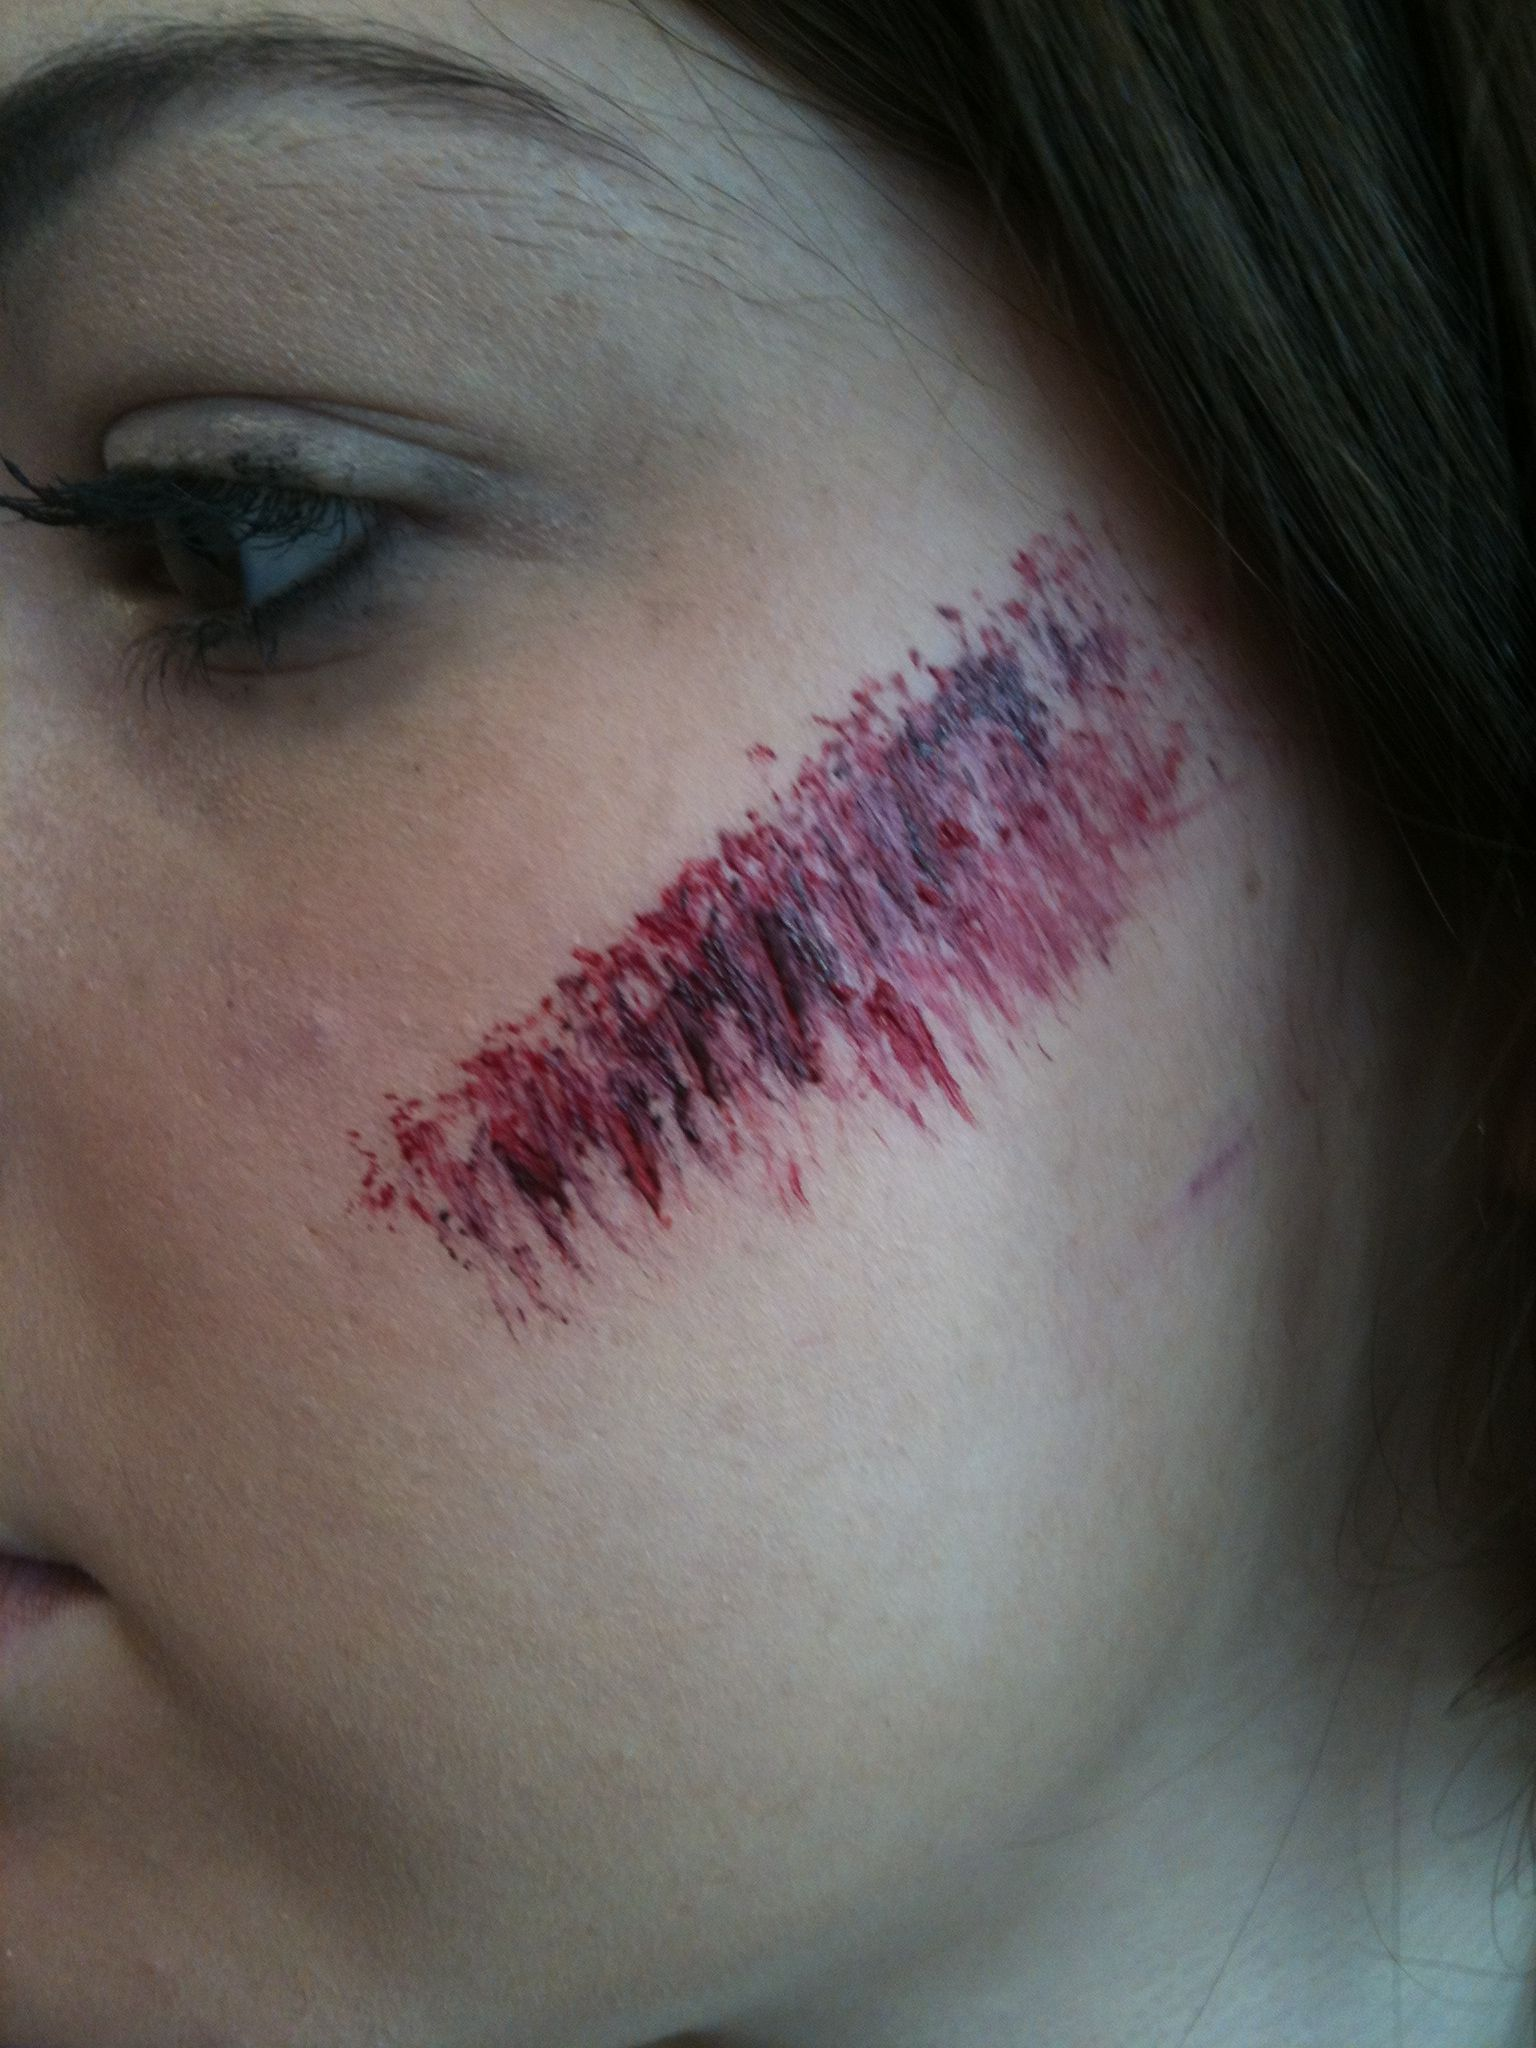 graze special effects makeup college blood cut girl cheek i